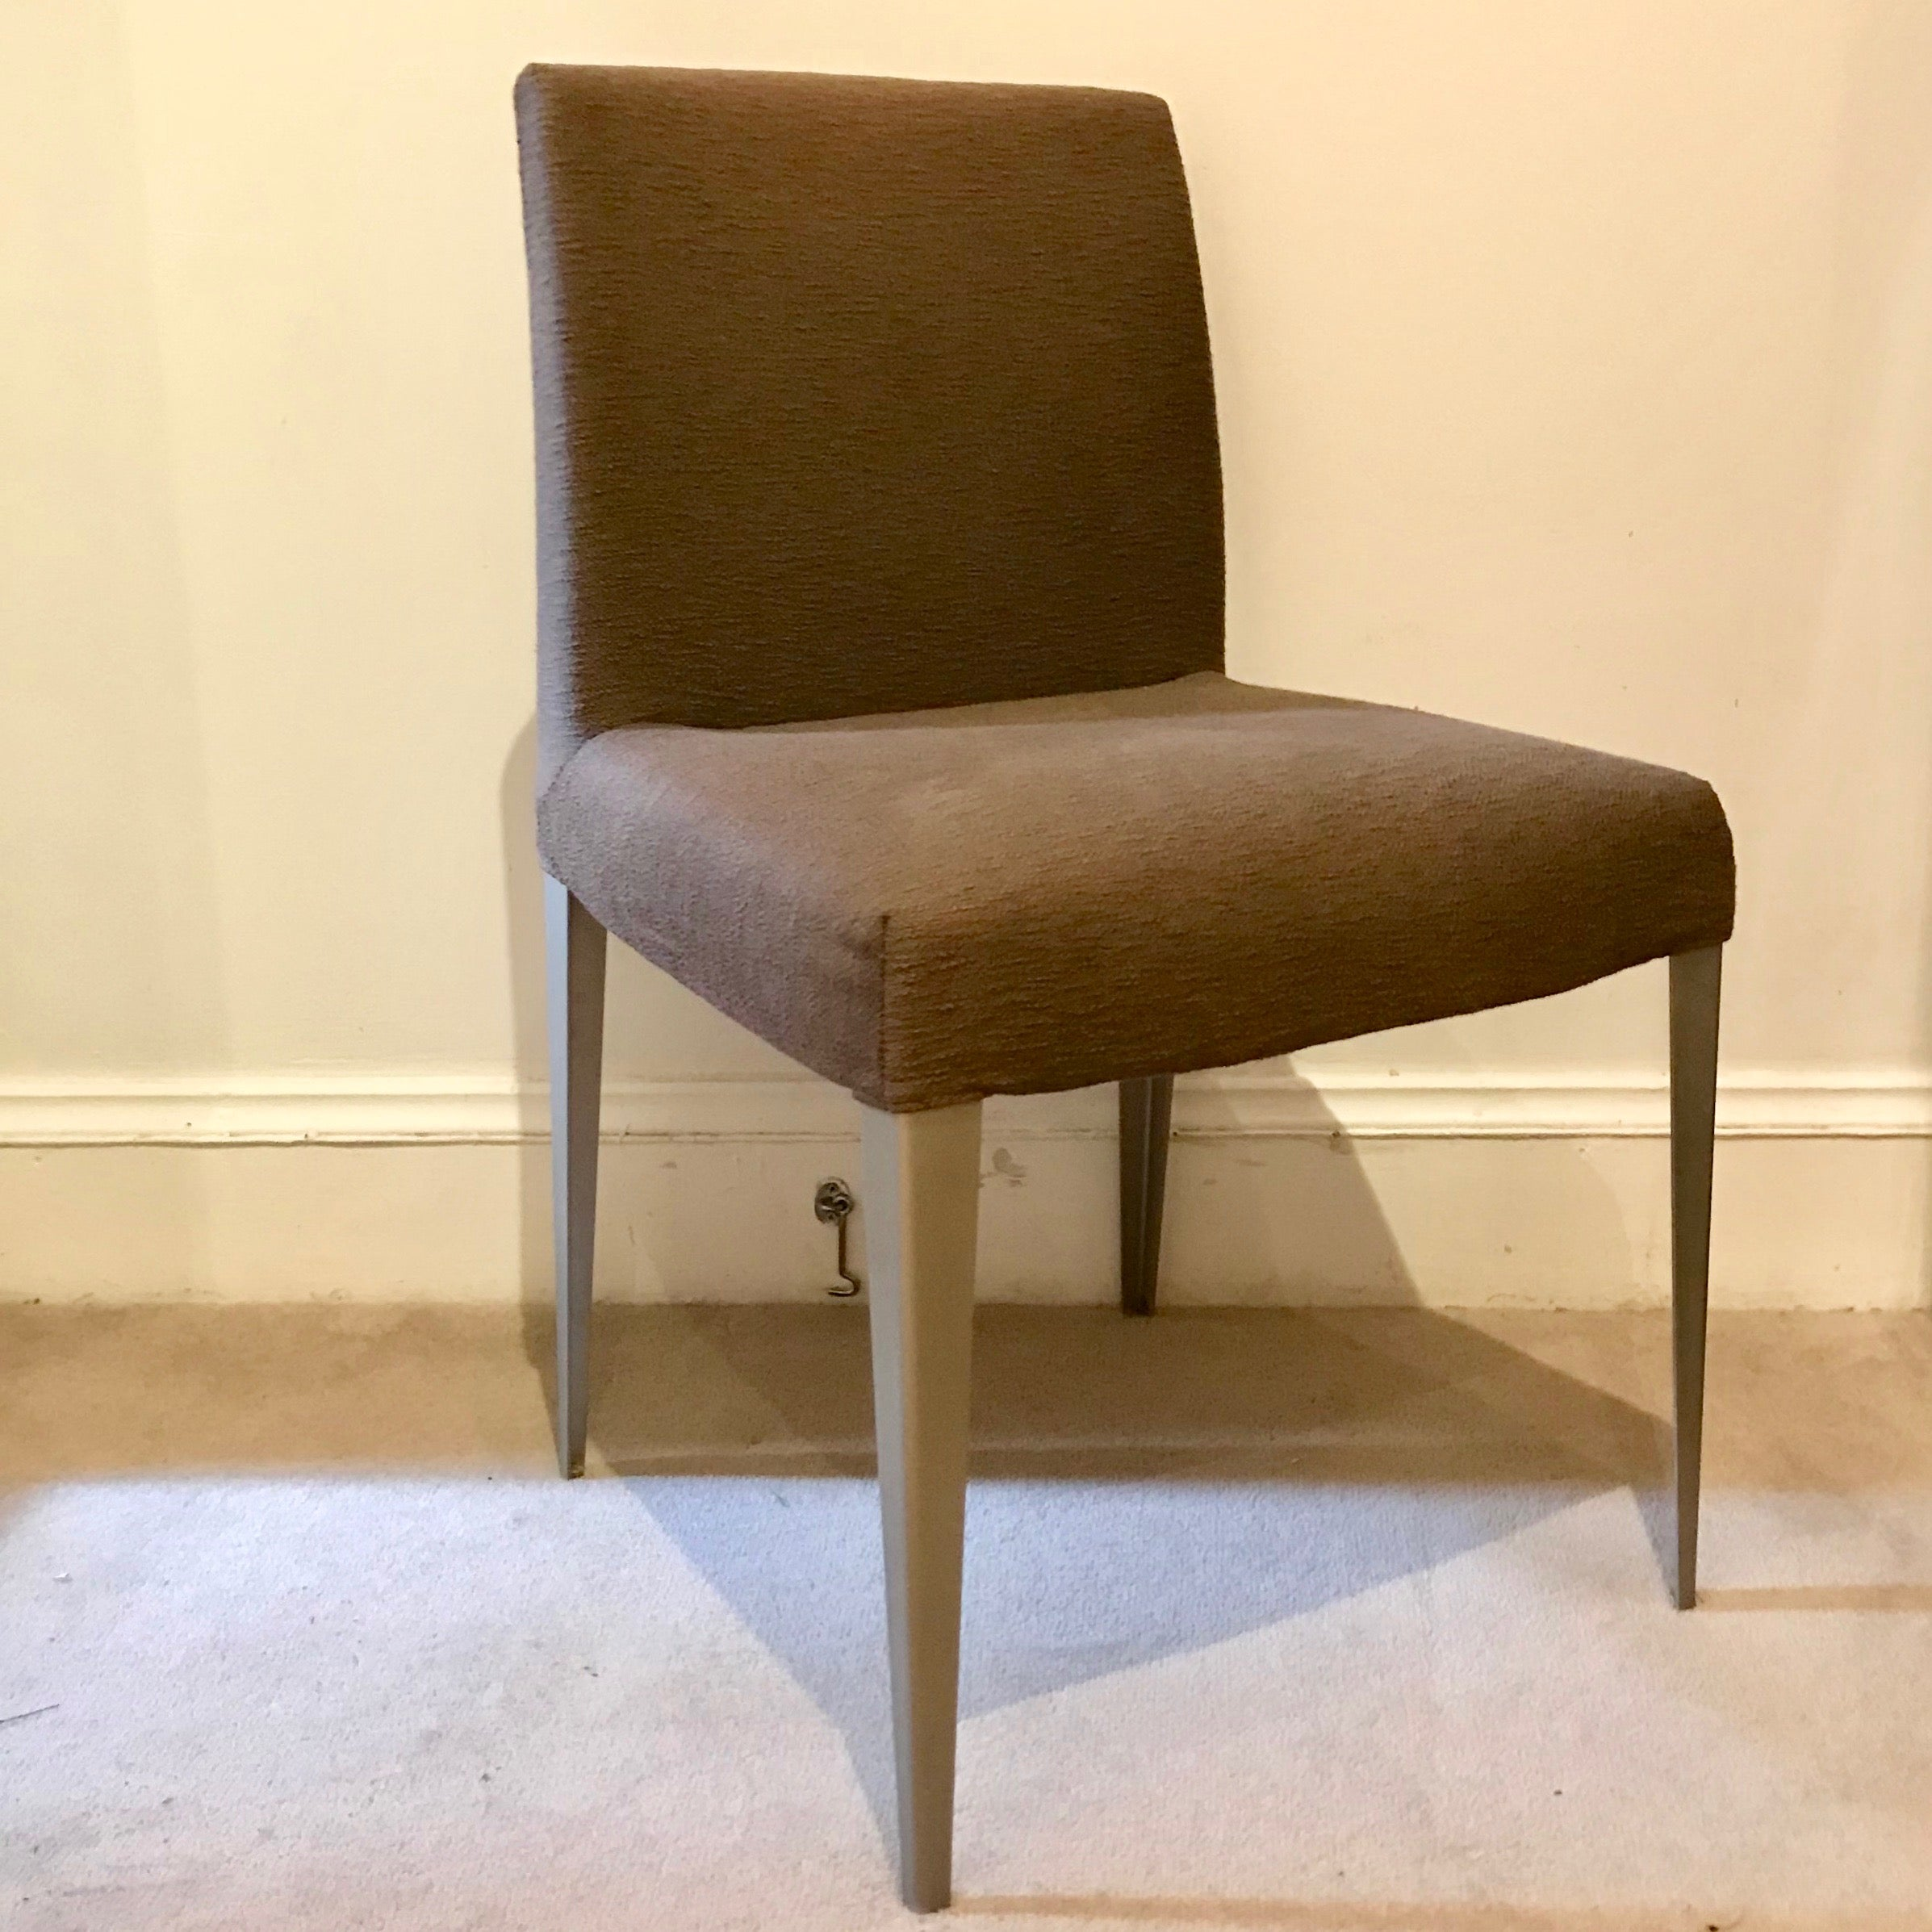 Set of FOUR Melandra Dining Chairs By Antonio Citterio for B&B Italia